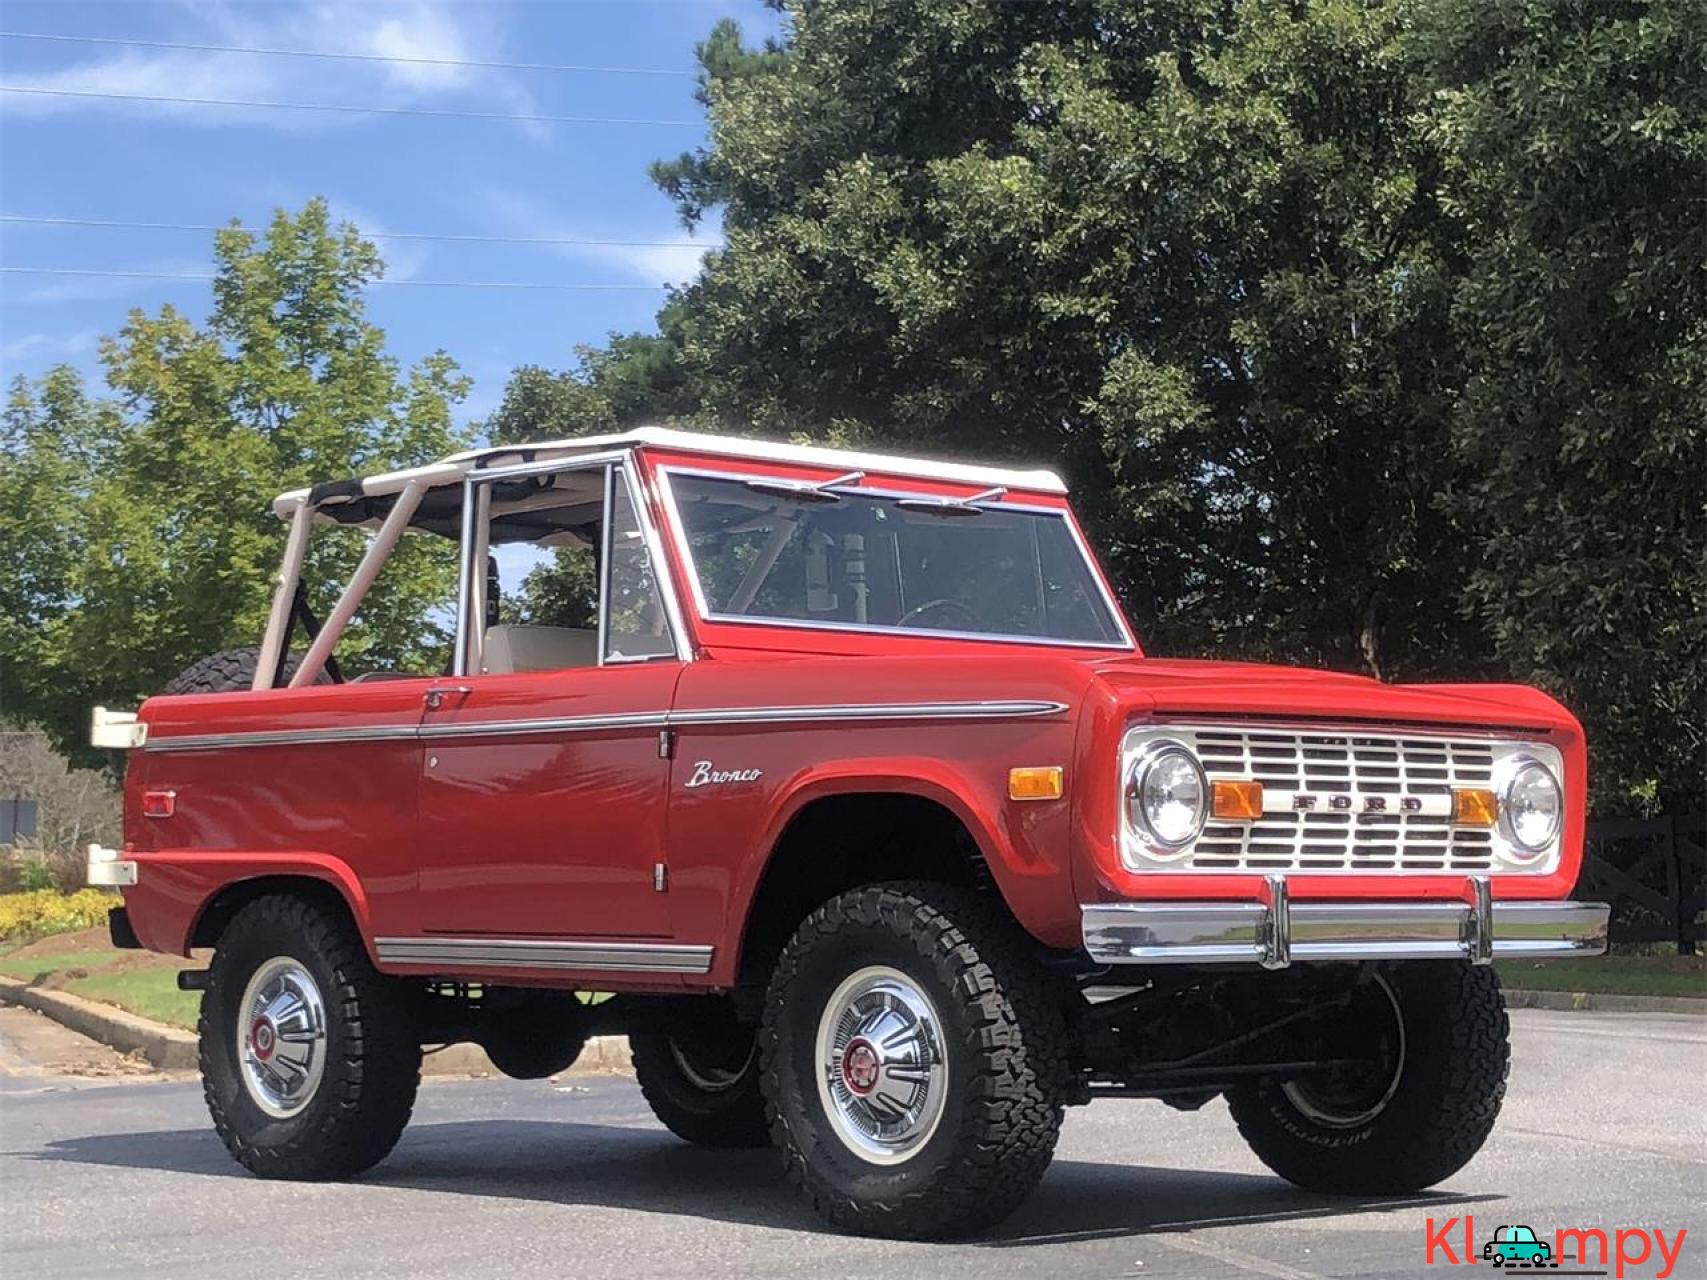 1974 Ford Bronco STRONG 302 - 1/20